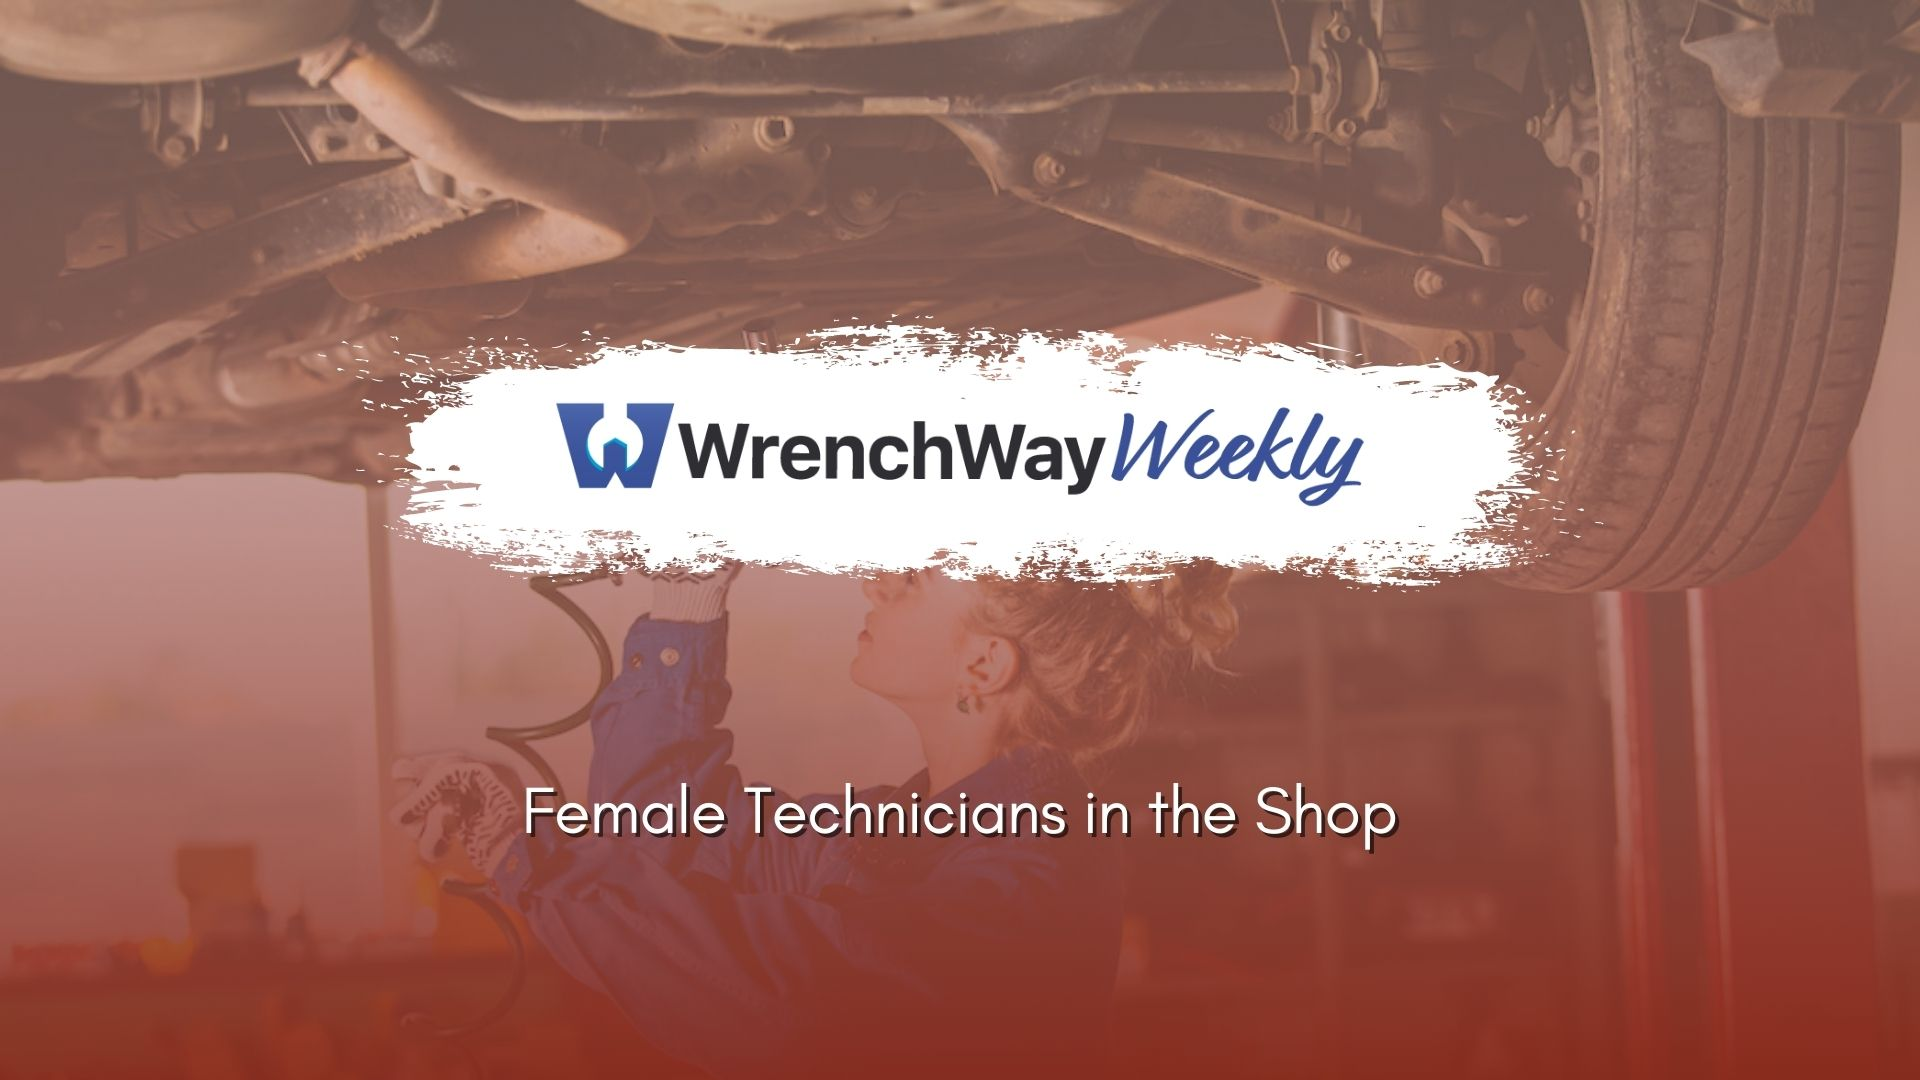 wrenchway weekly episode female technicians in the shop